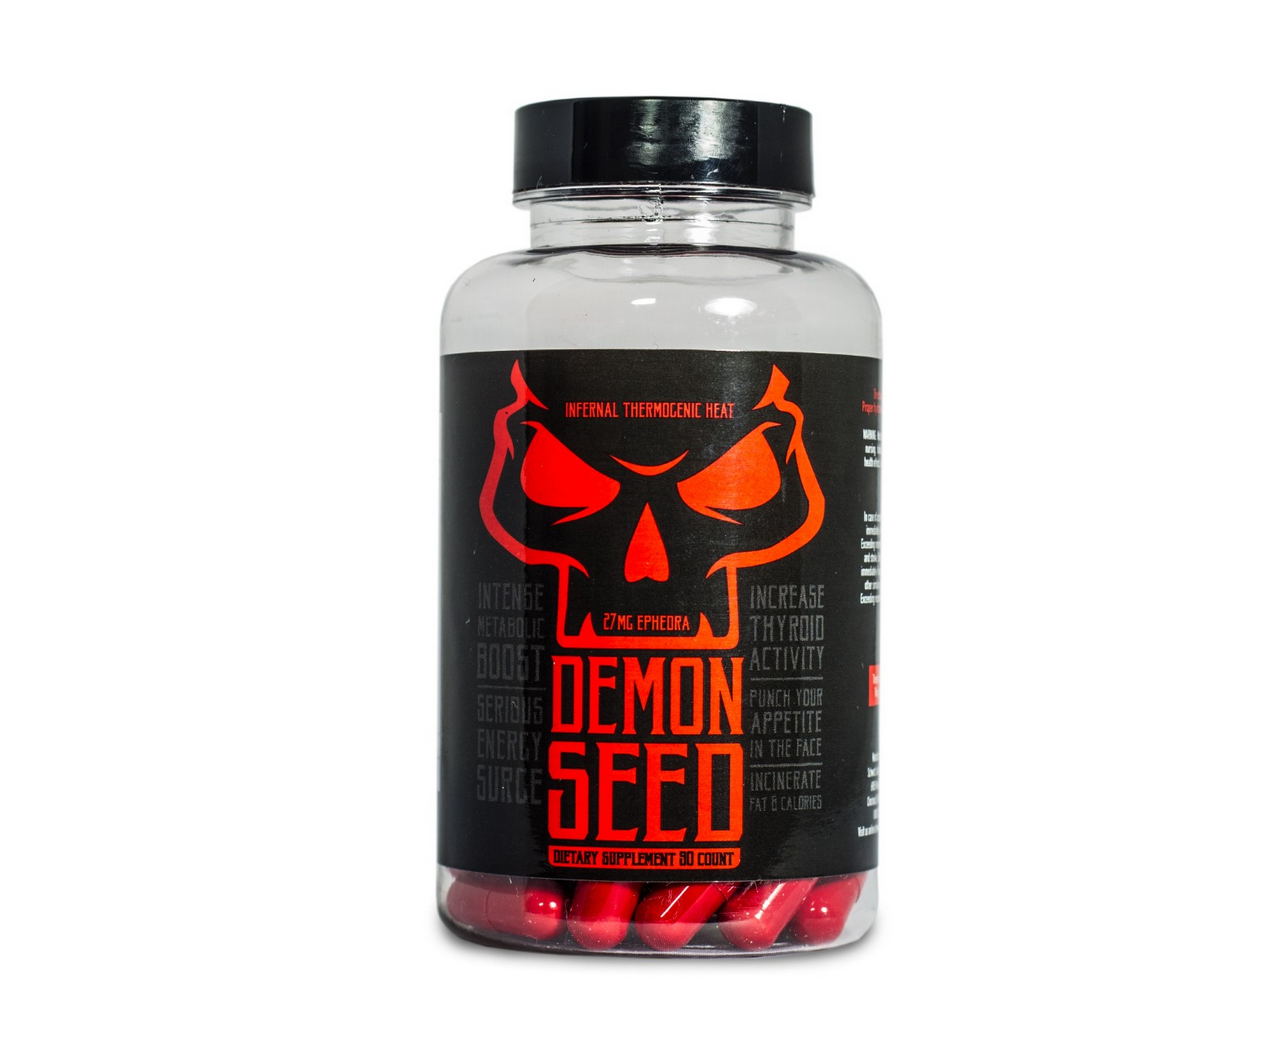 Demon Seed Ephedra Review | Fat Burner Pill | Is it Safe?